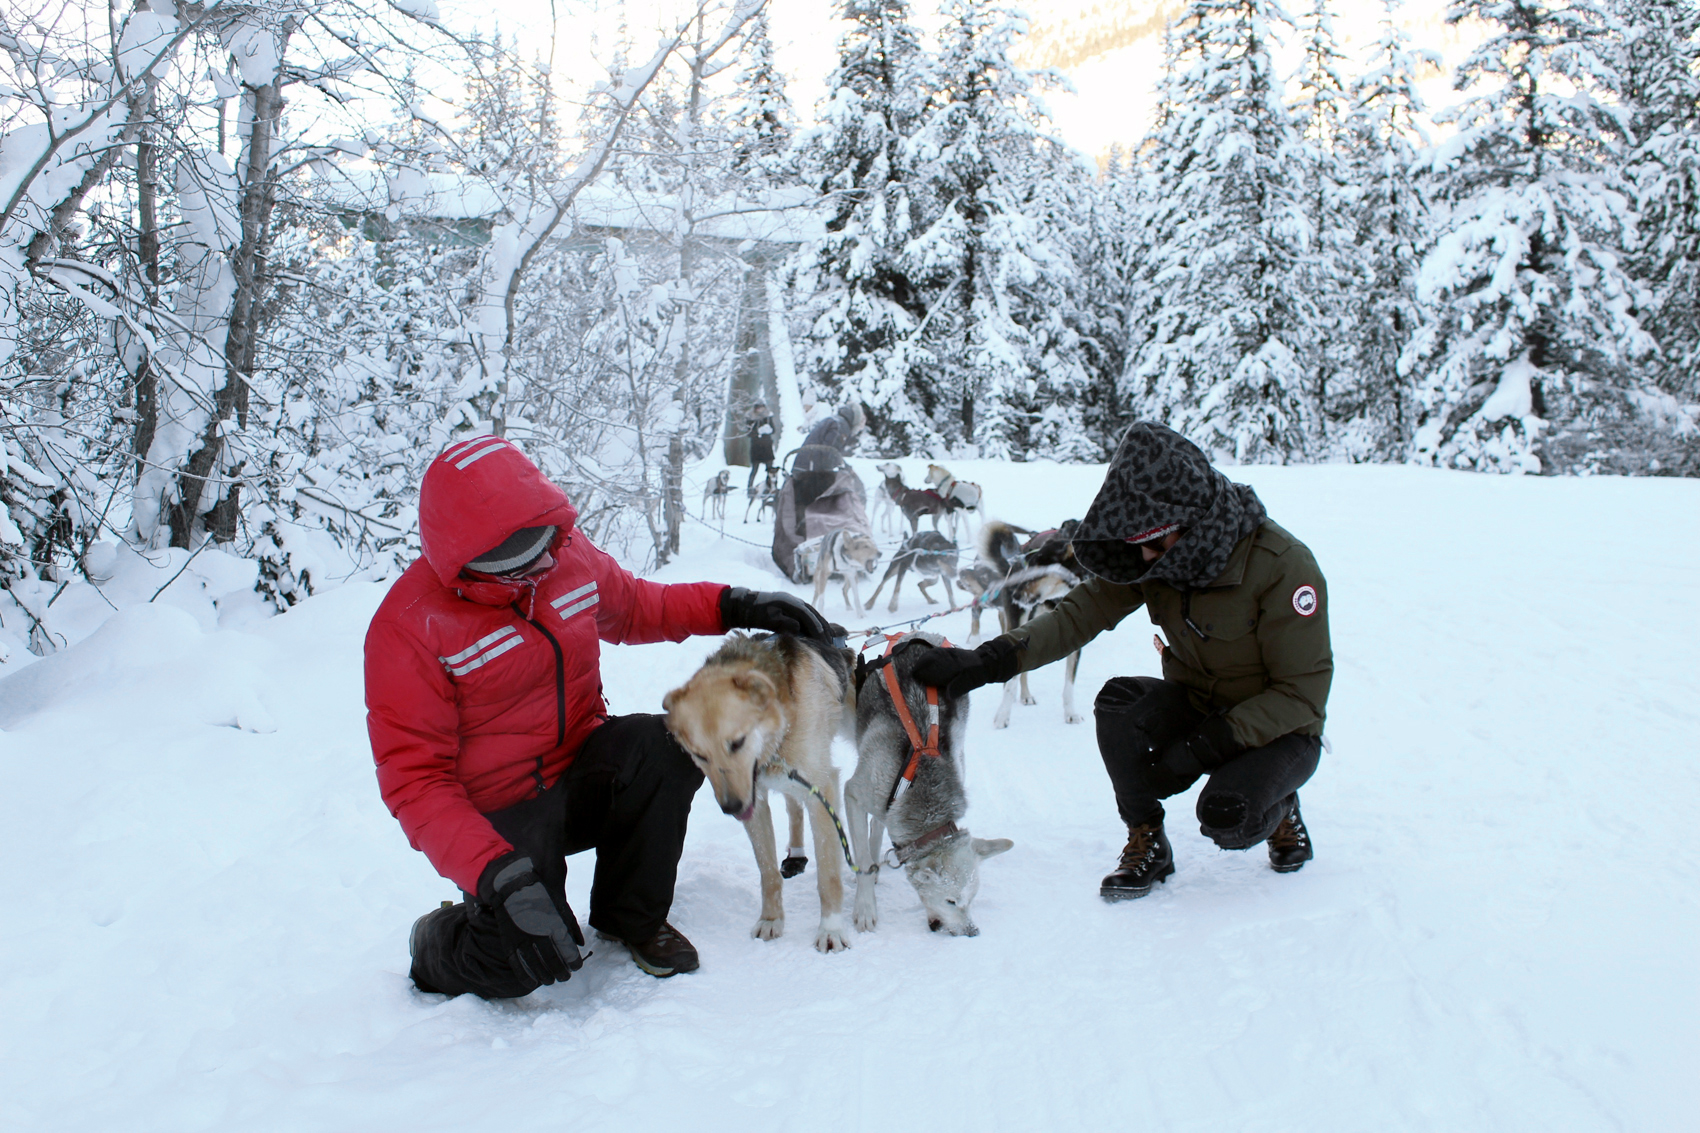 Geoff and I wrapped up as warm as possible meeting our sled dogs.